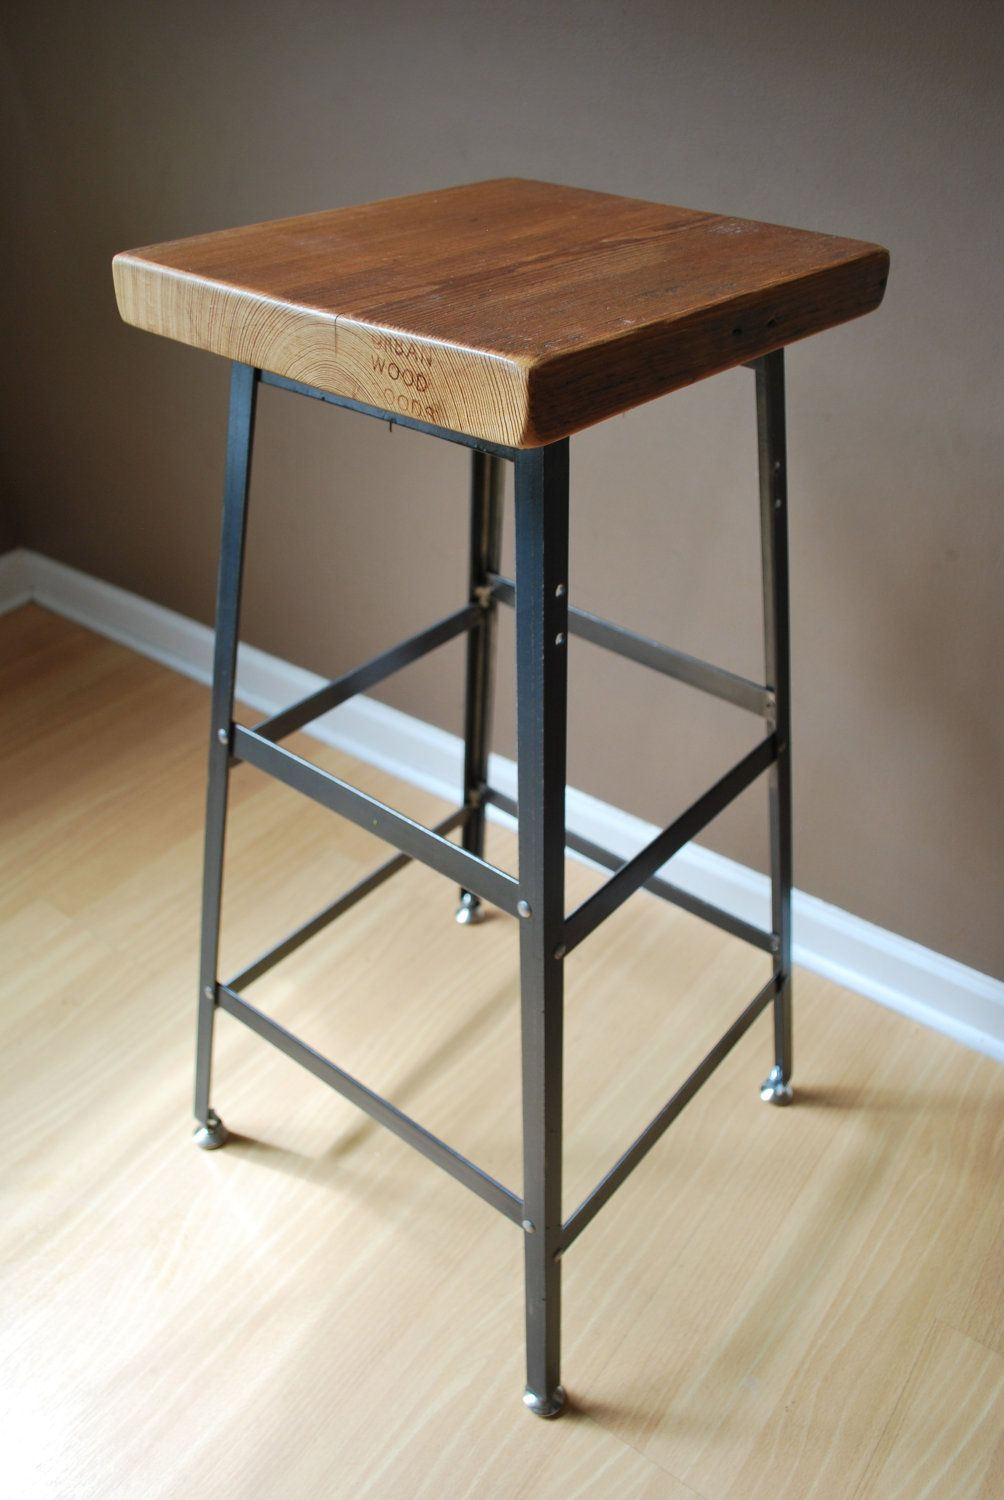 1 Reclaimed Wood And Steel Stool Made In Chicago Qty 25 Counter Height